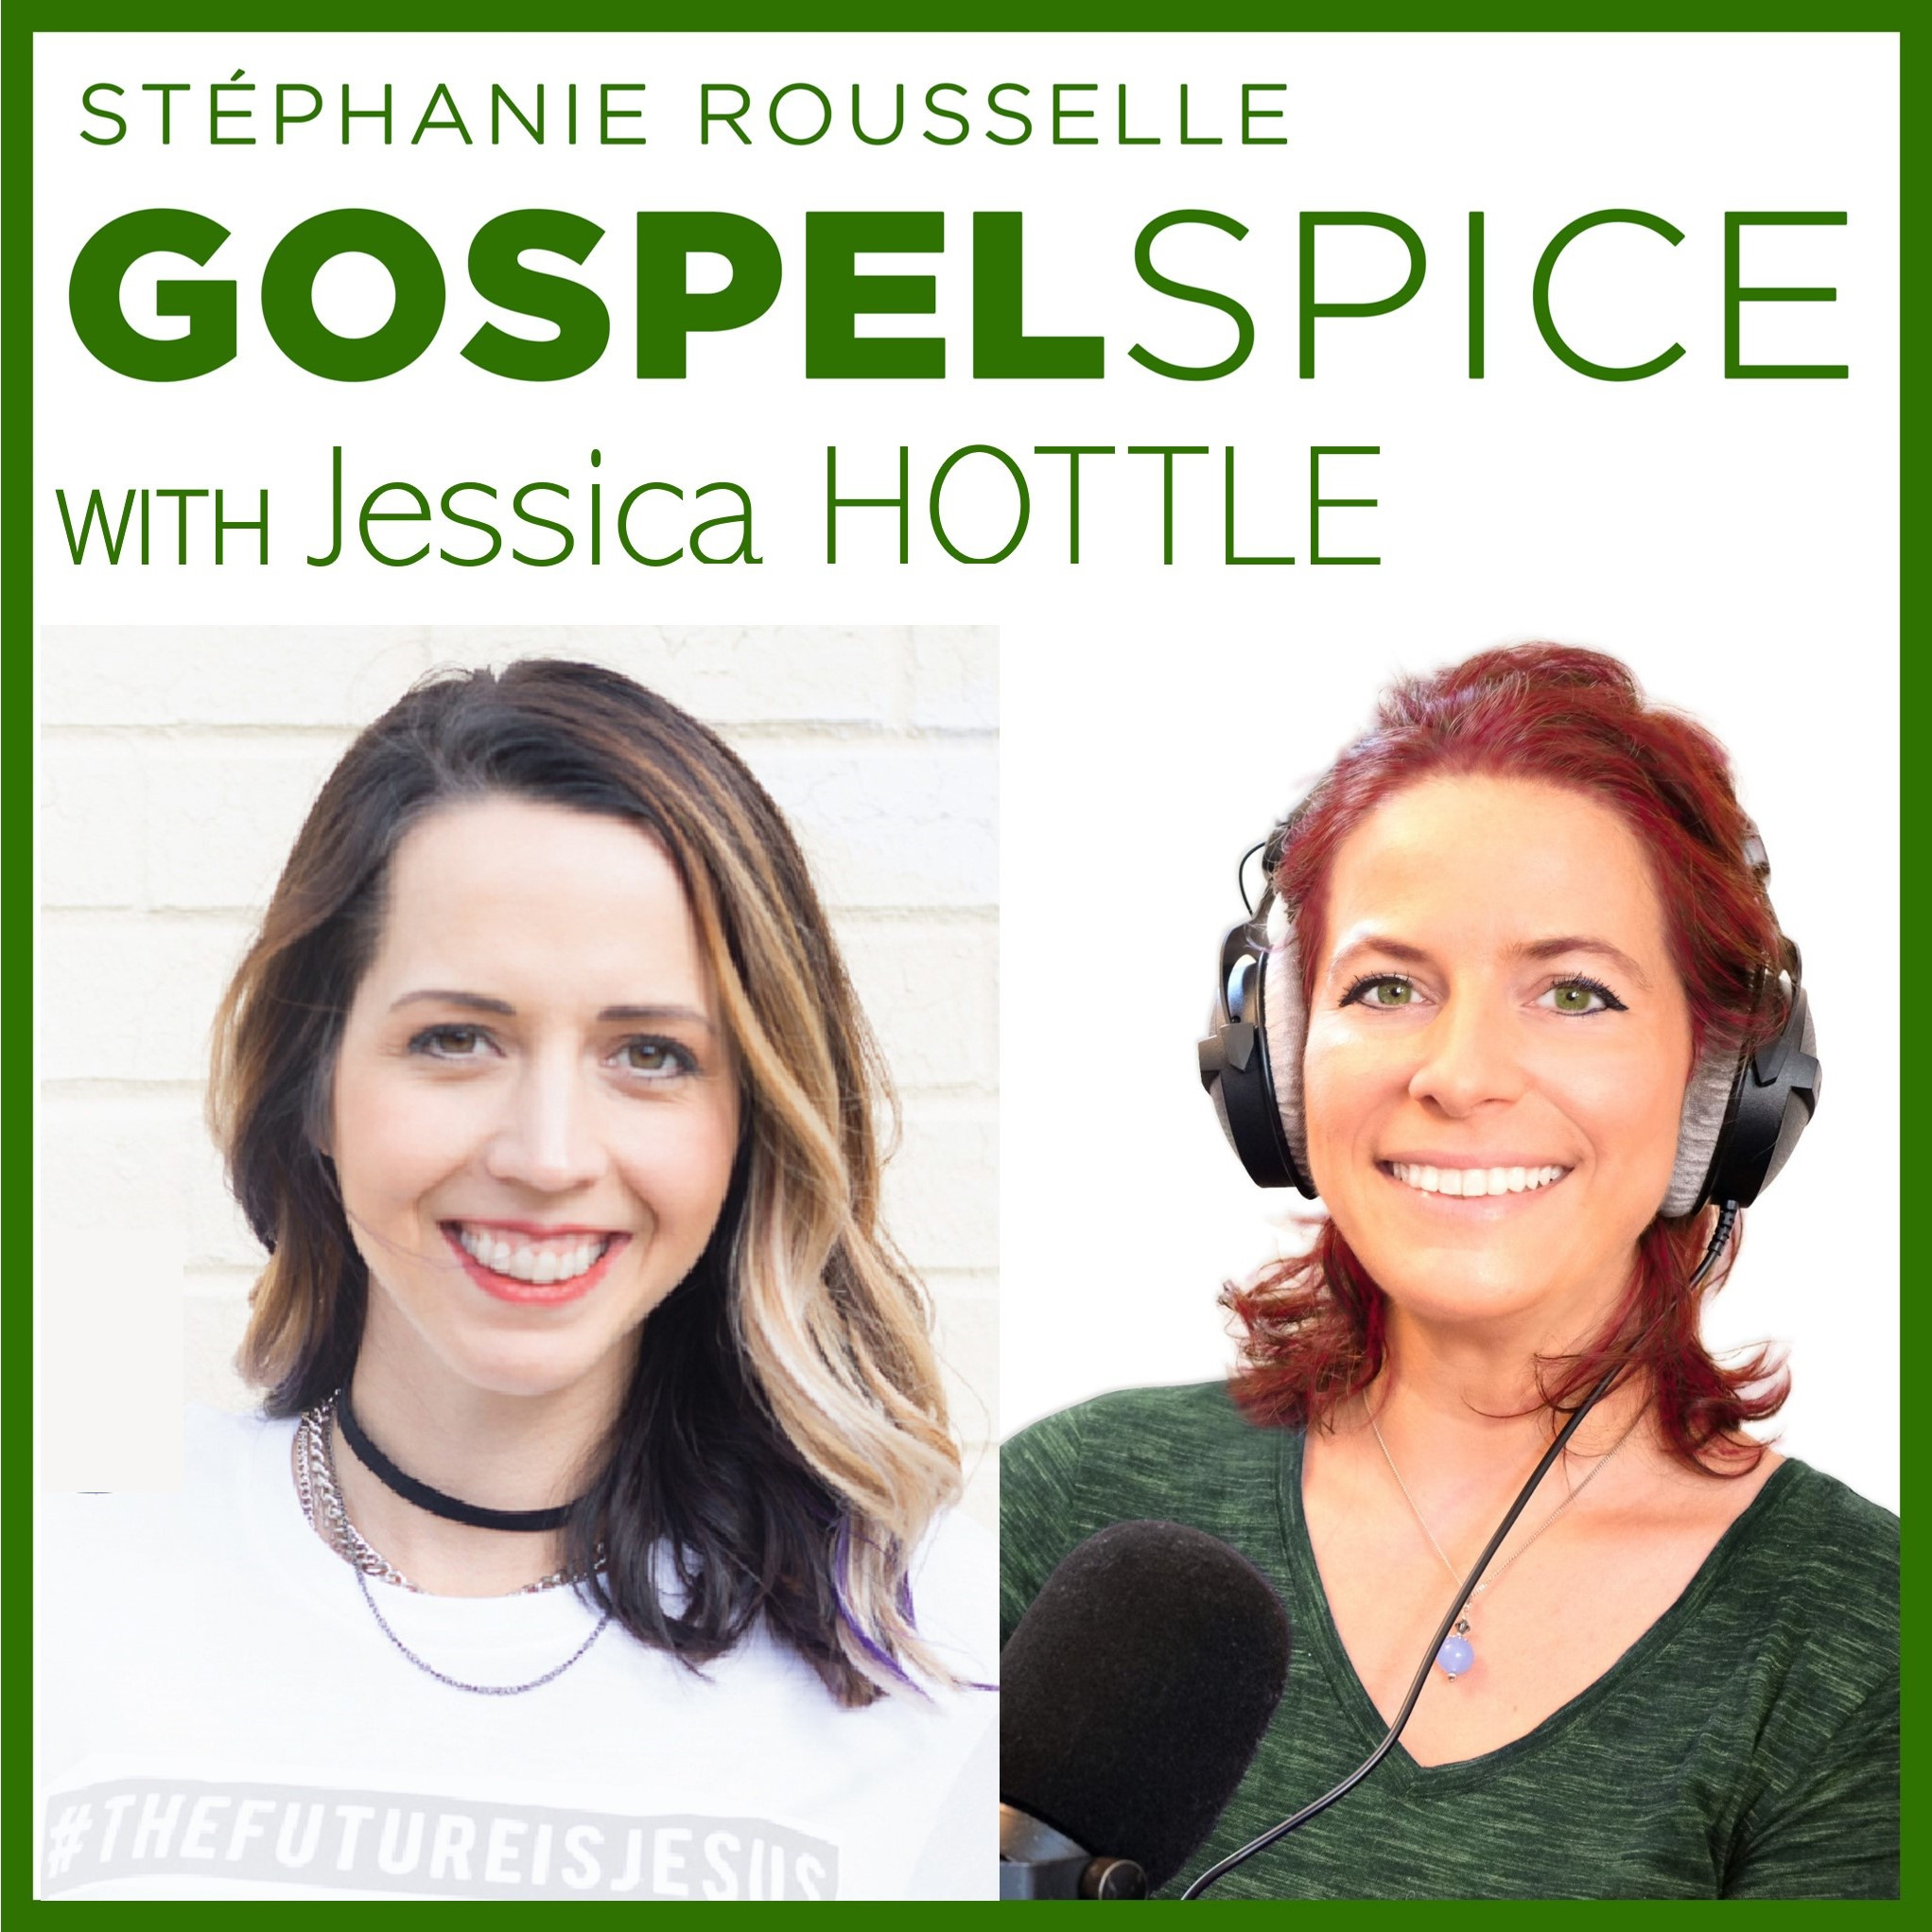 Challenge the way you think, change the way you live! with Jessica Hottle